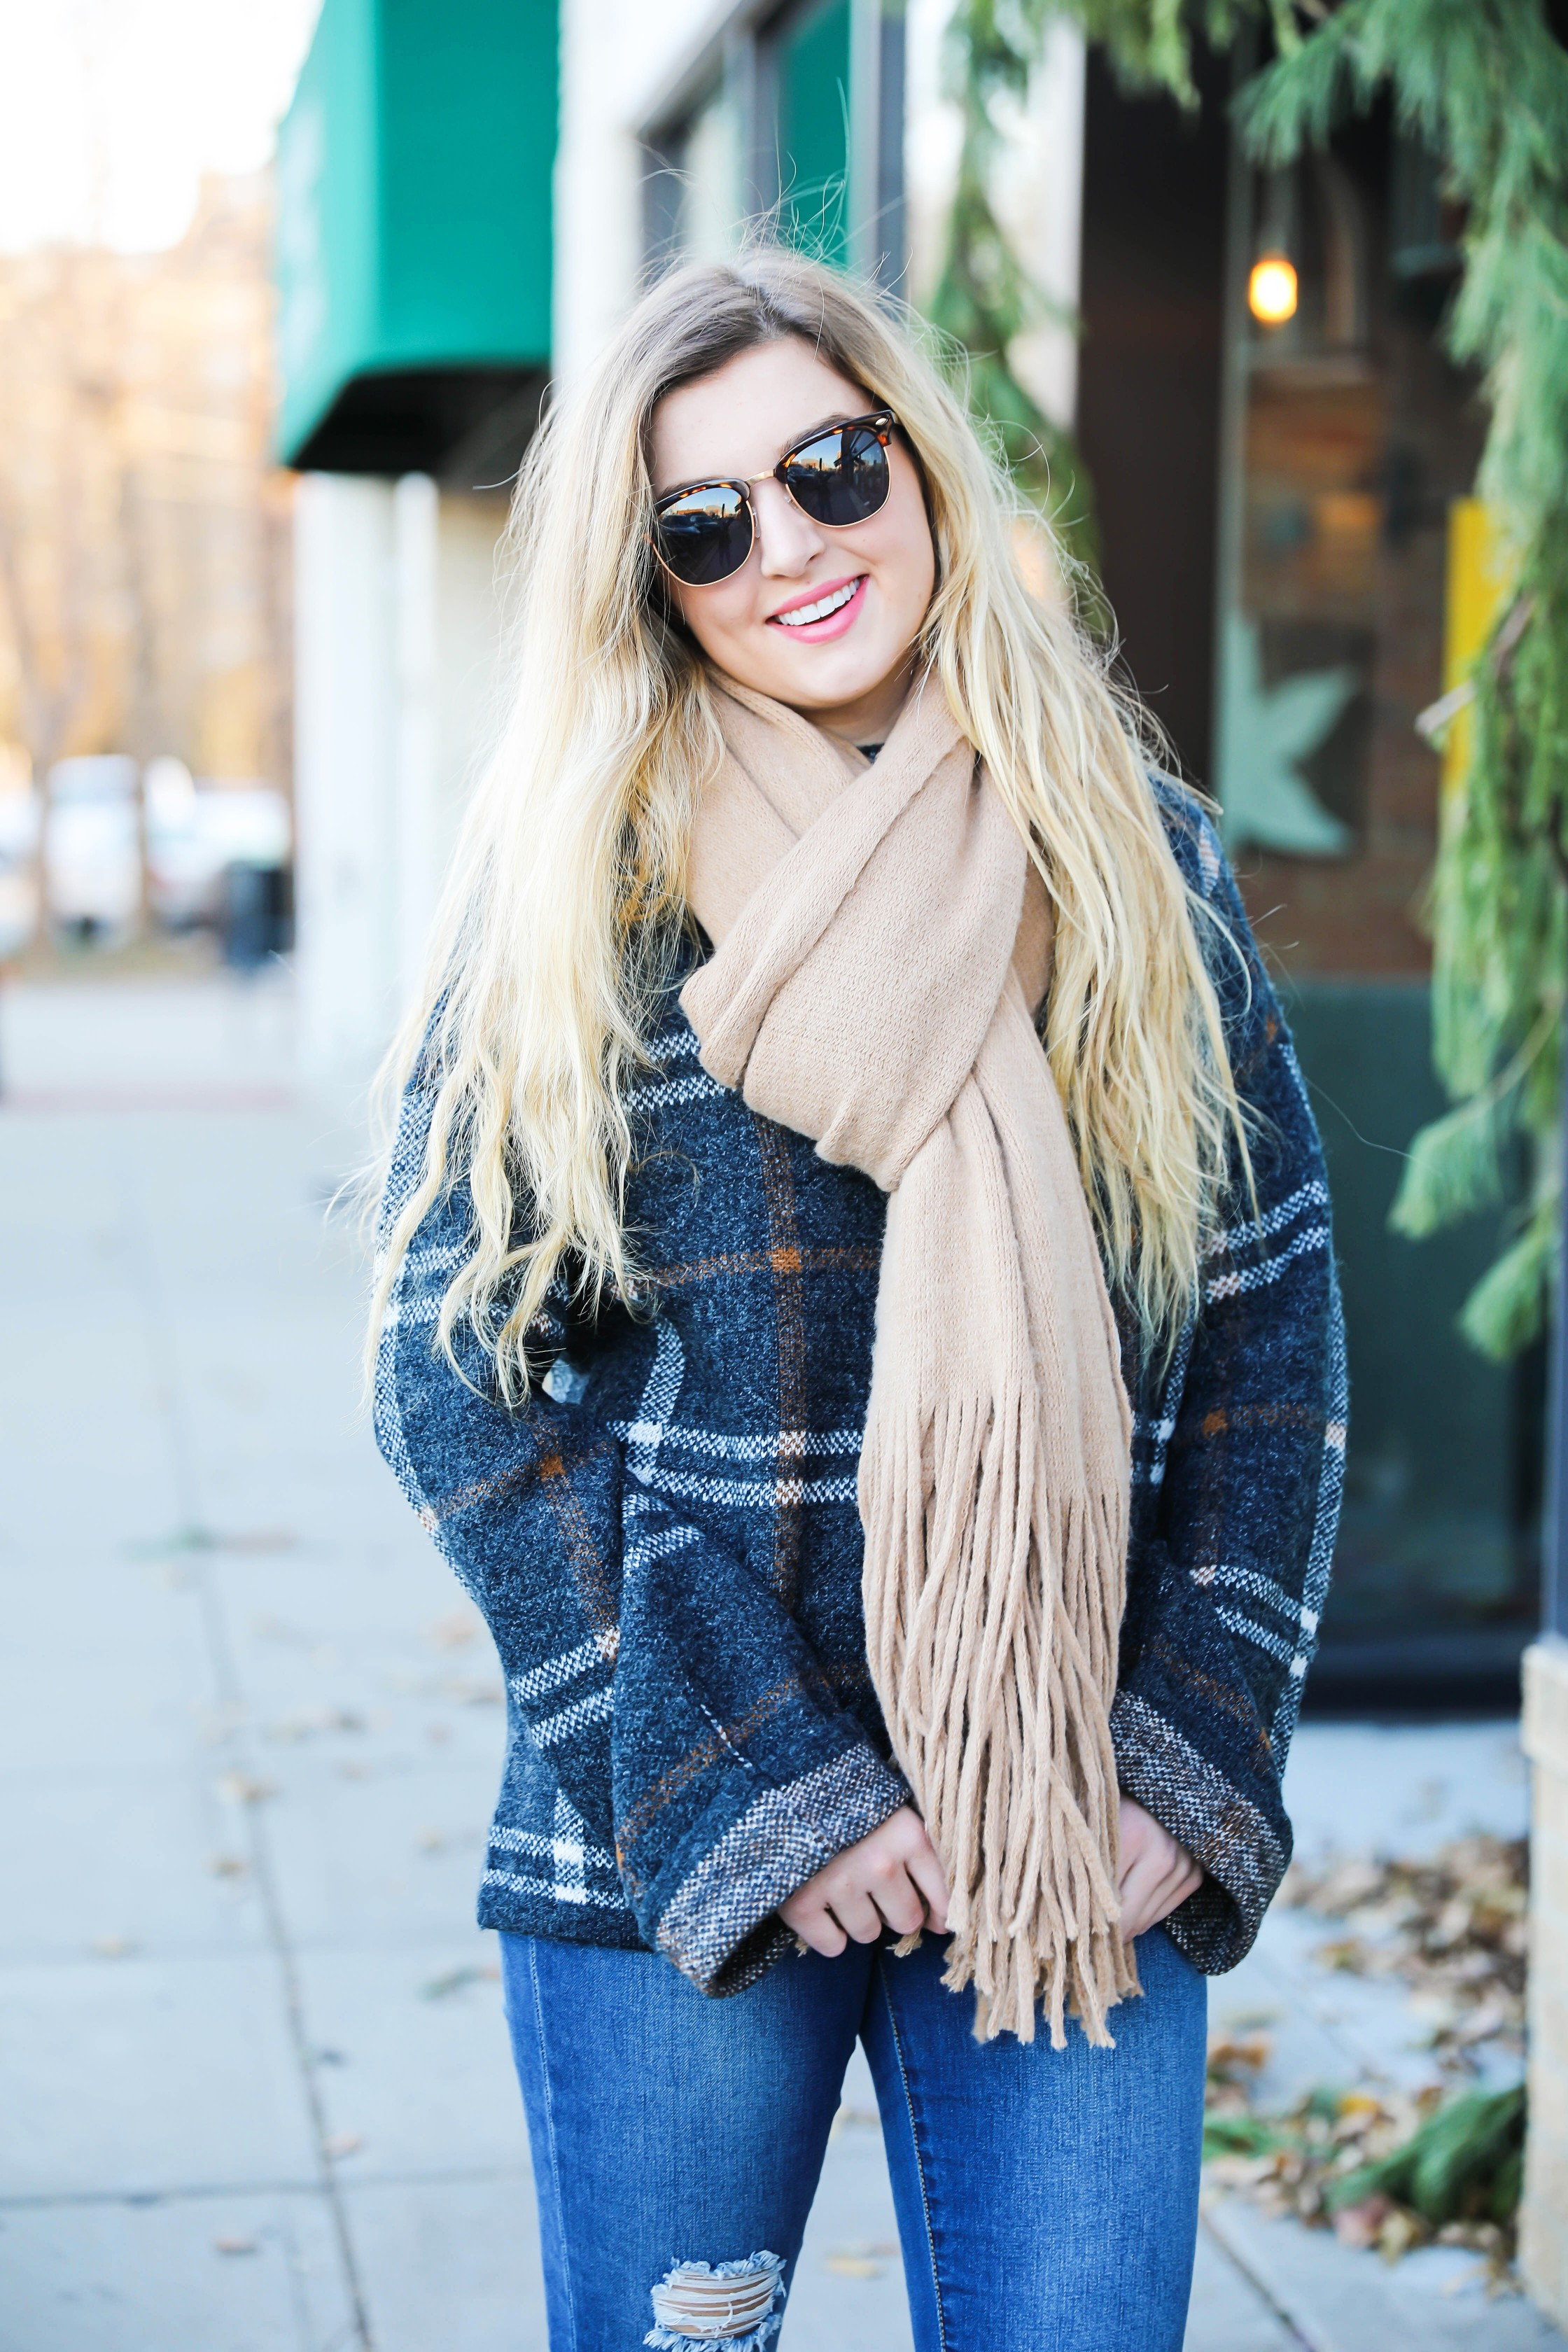 Plaid sweater with fringe free people scarf! Super cute winter outfit idea! Get all the details on fashion blog daily dose of charm by Lauren Lindmark